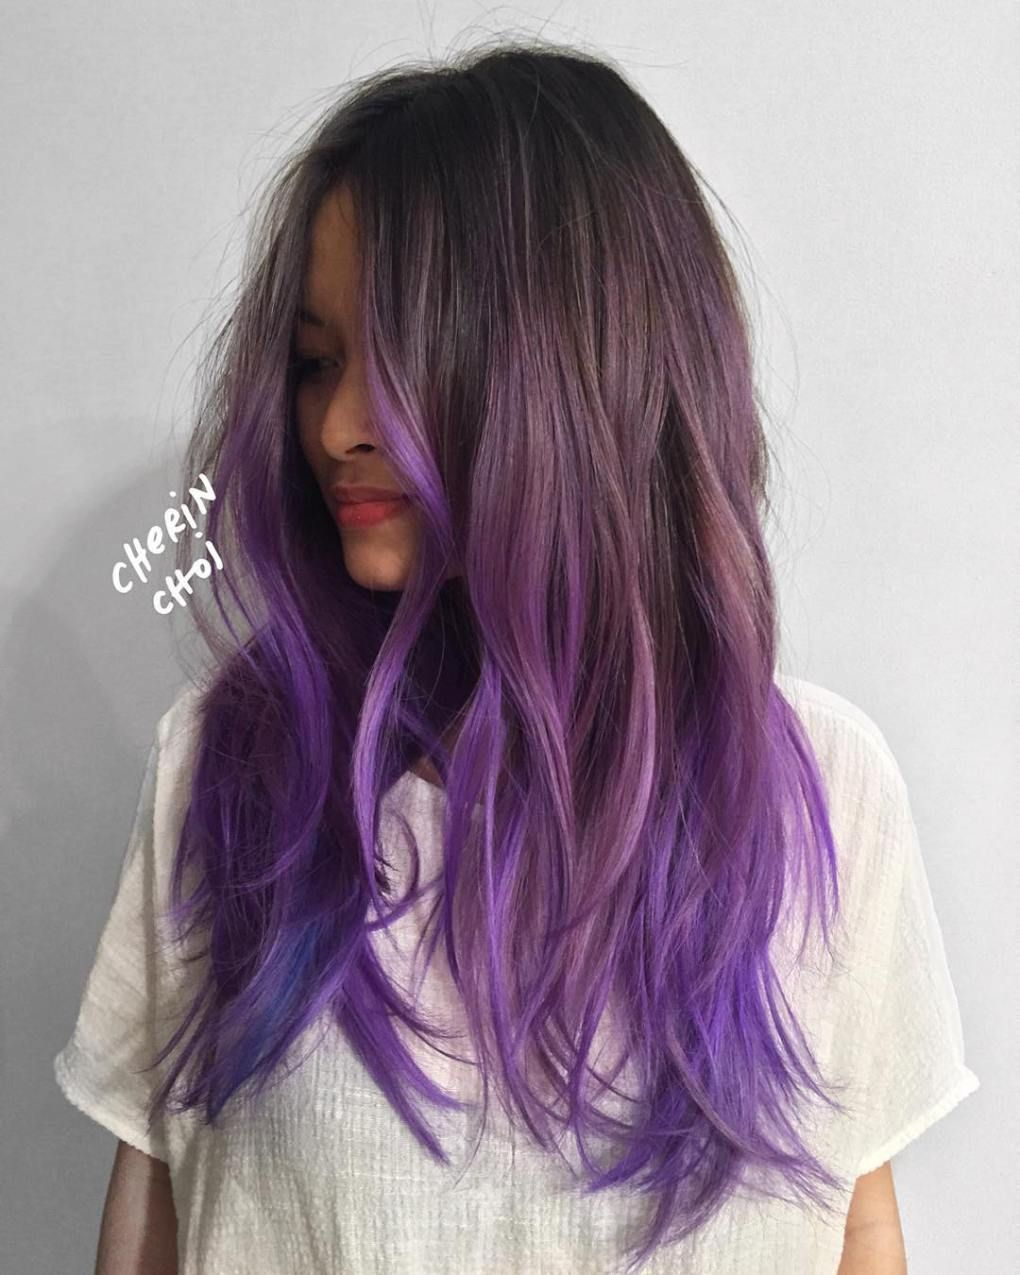 20 ways to wear violet hair | long hairdo i care? | hair